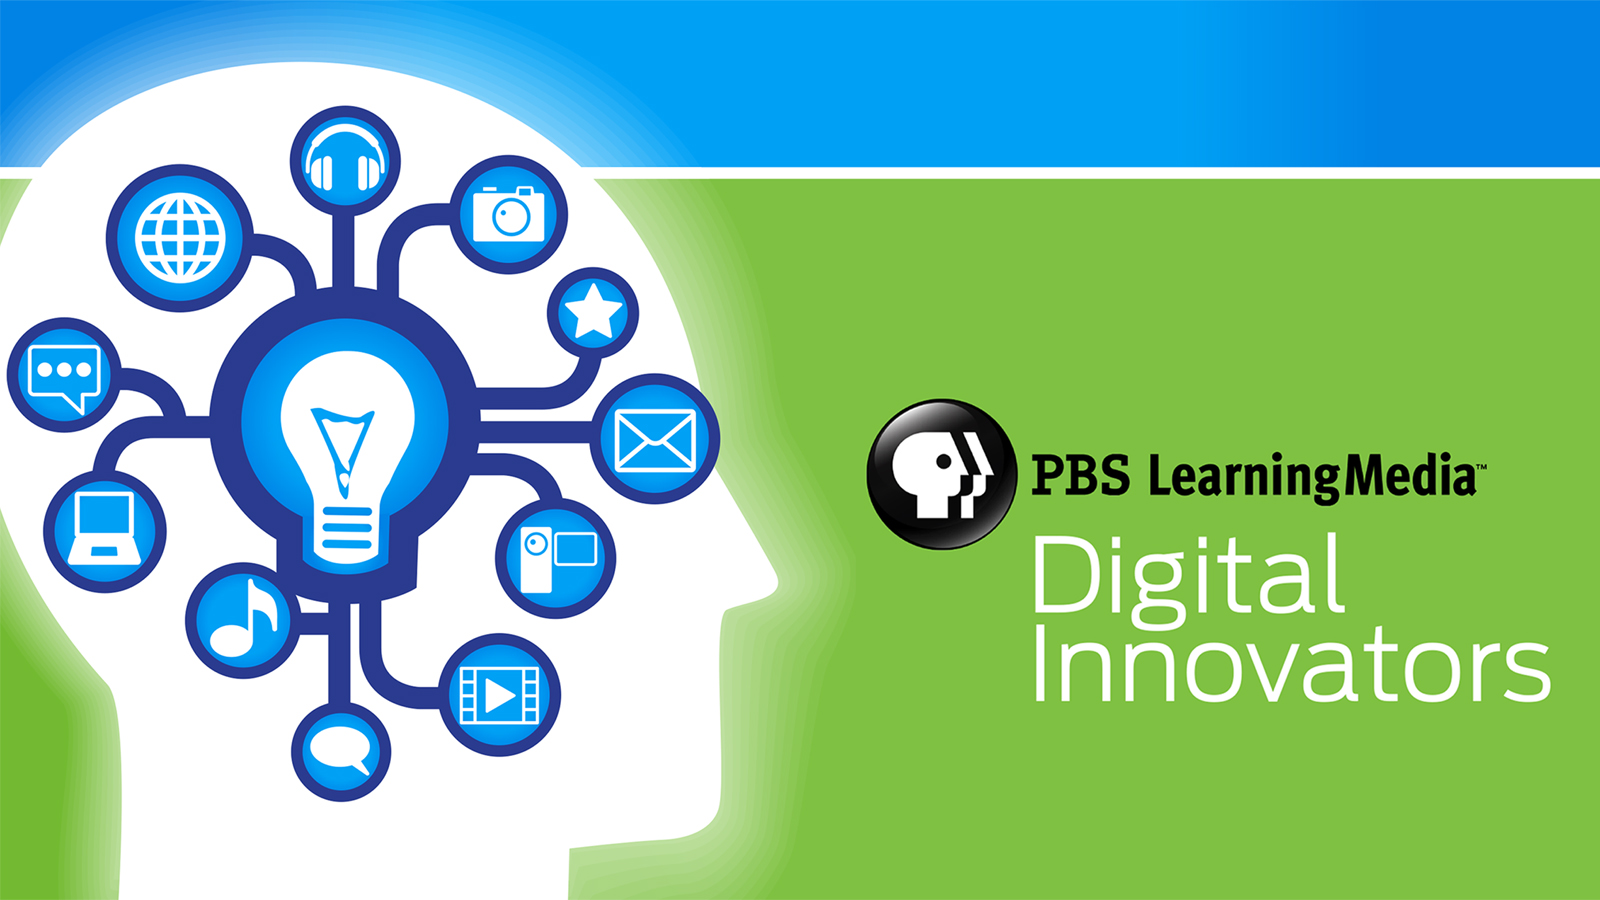 Meet the 2014 PBS LearningMedia Digital Innovators